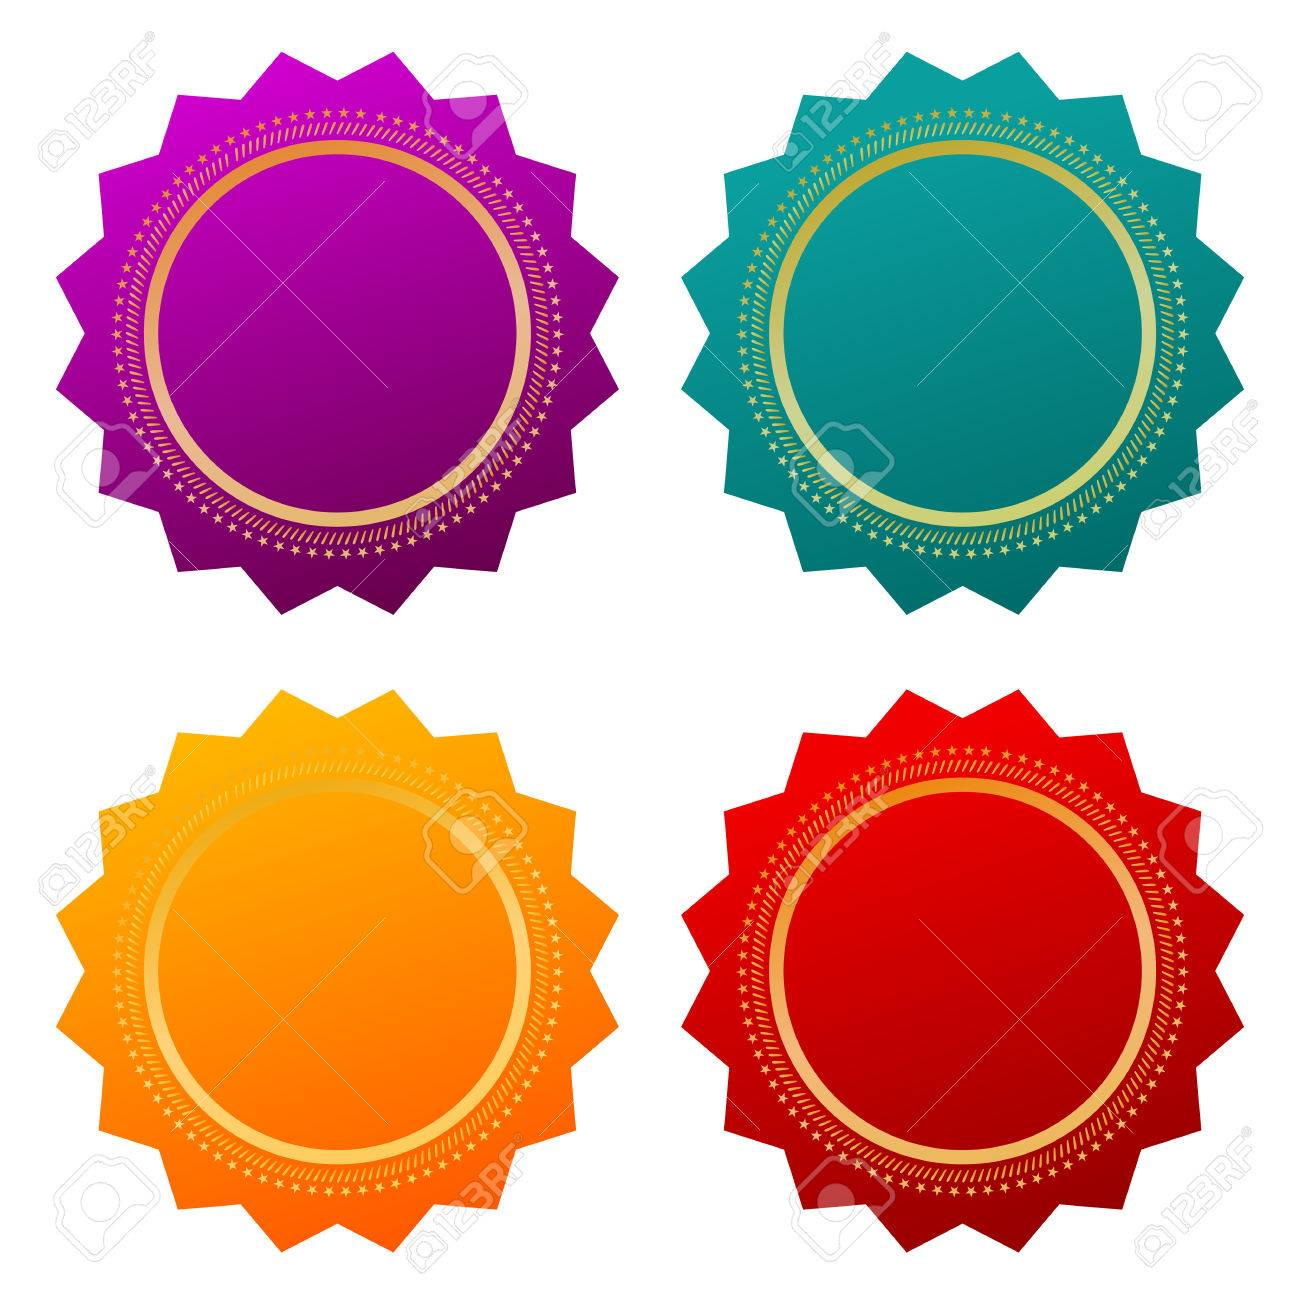 Blank Certificate Seals Royalty Free Cliparts Vectors And Stock